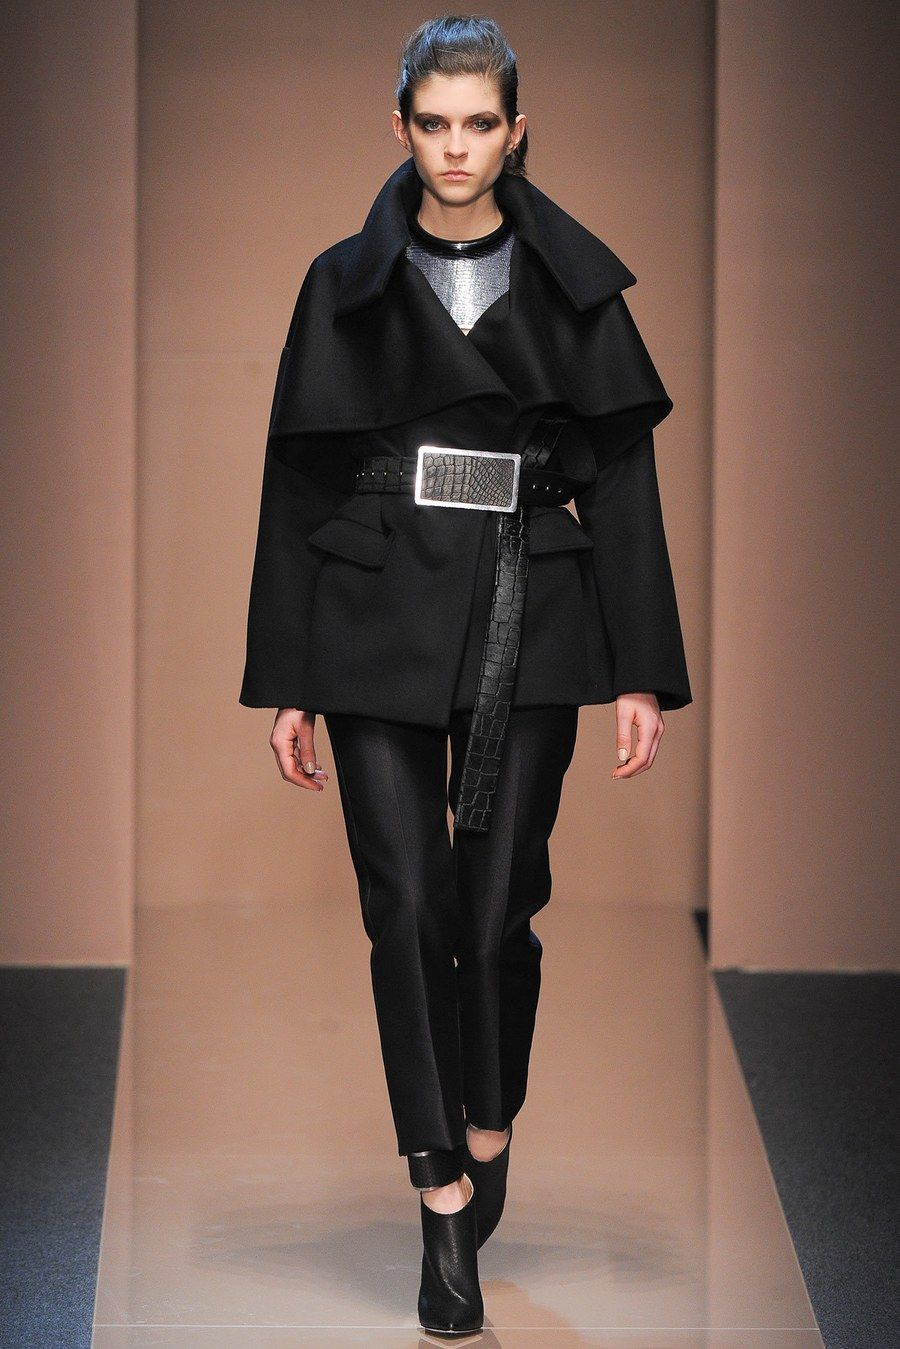 Ferre gianfranco fall runway review images